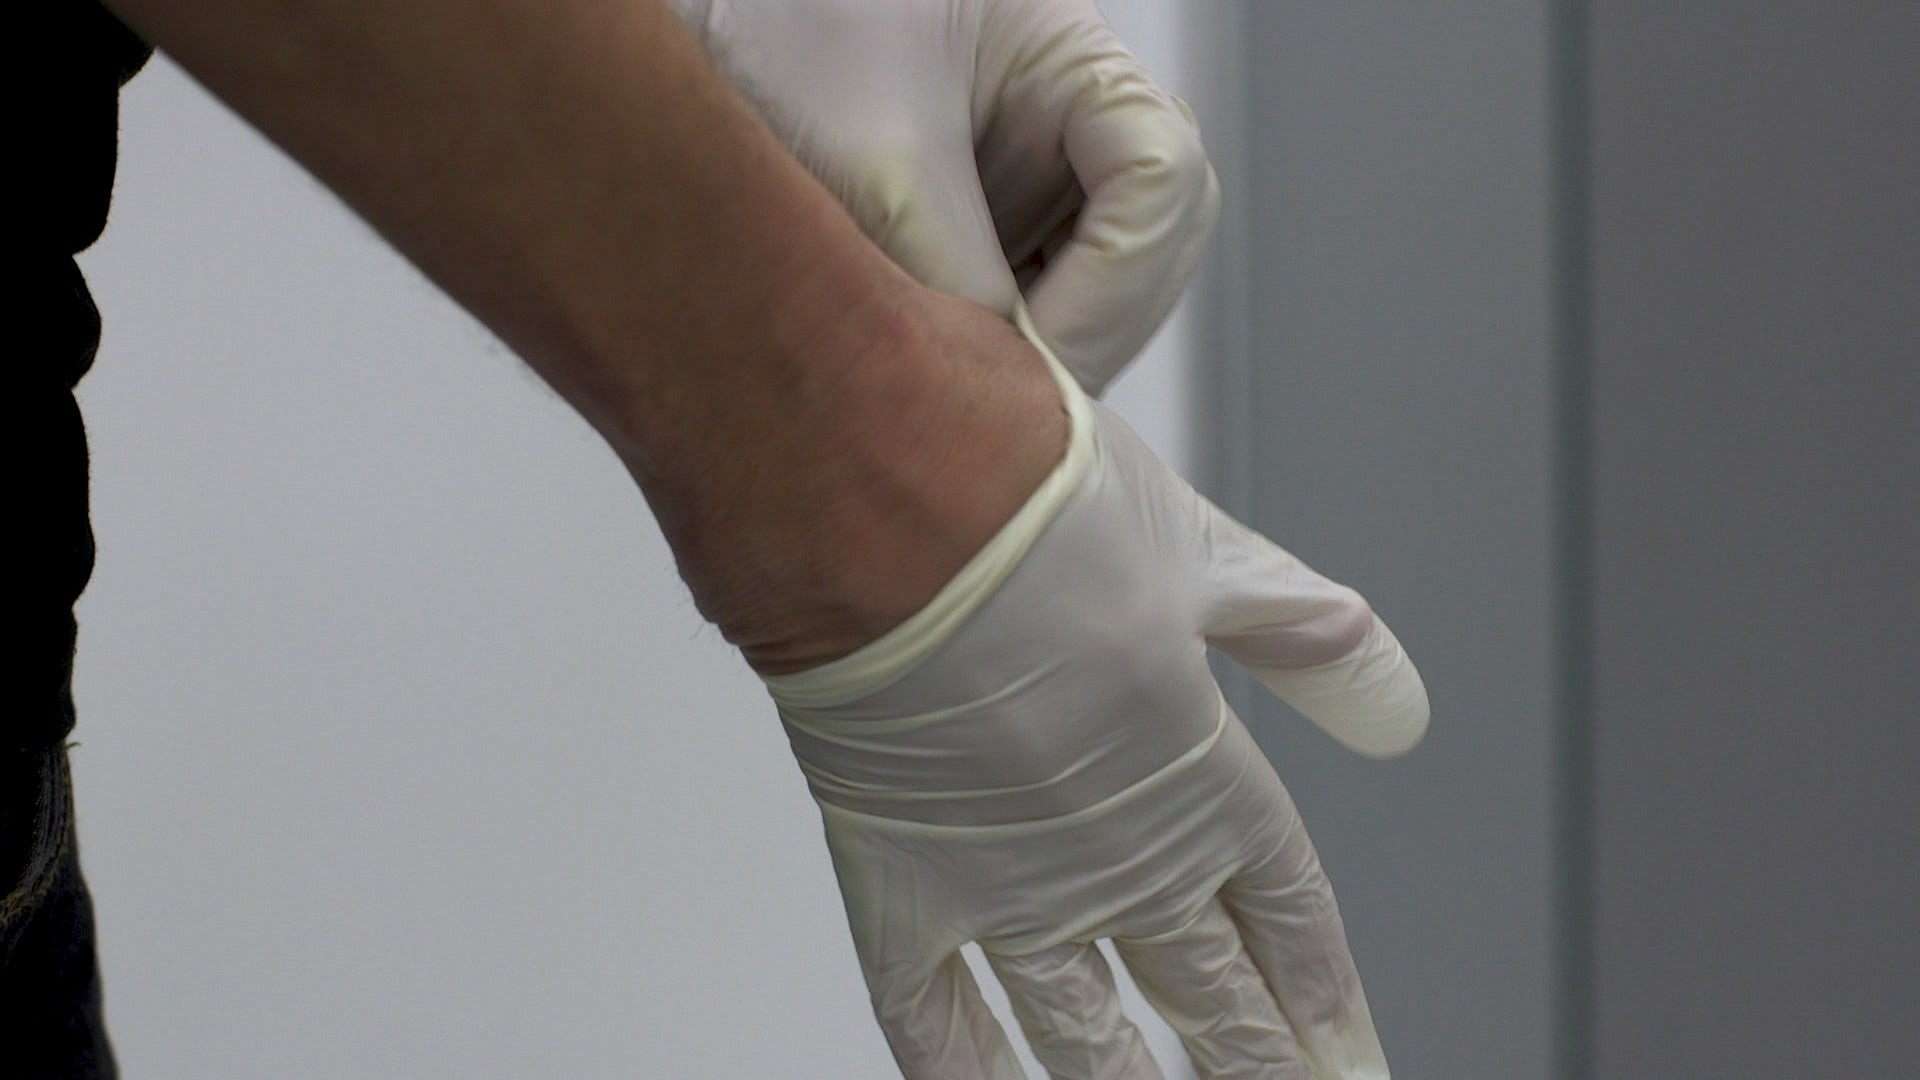 wear protective gloves when sealing